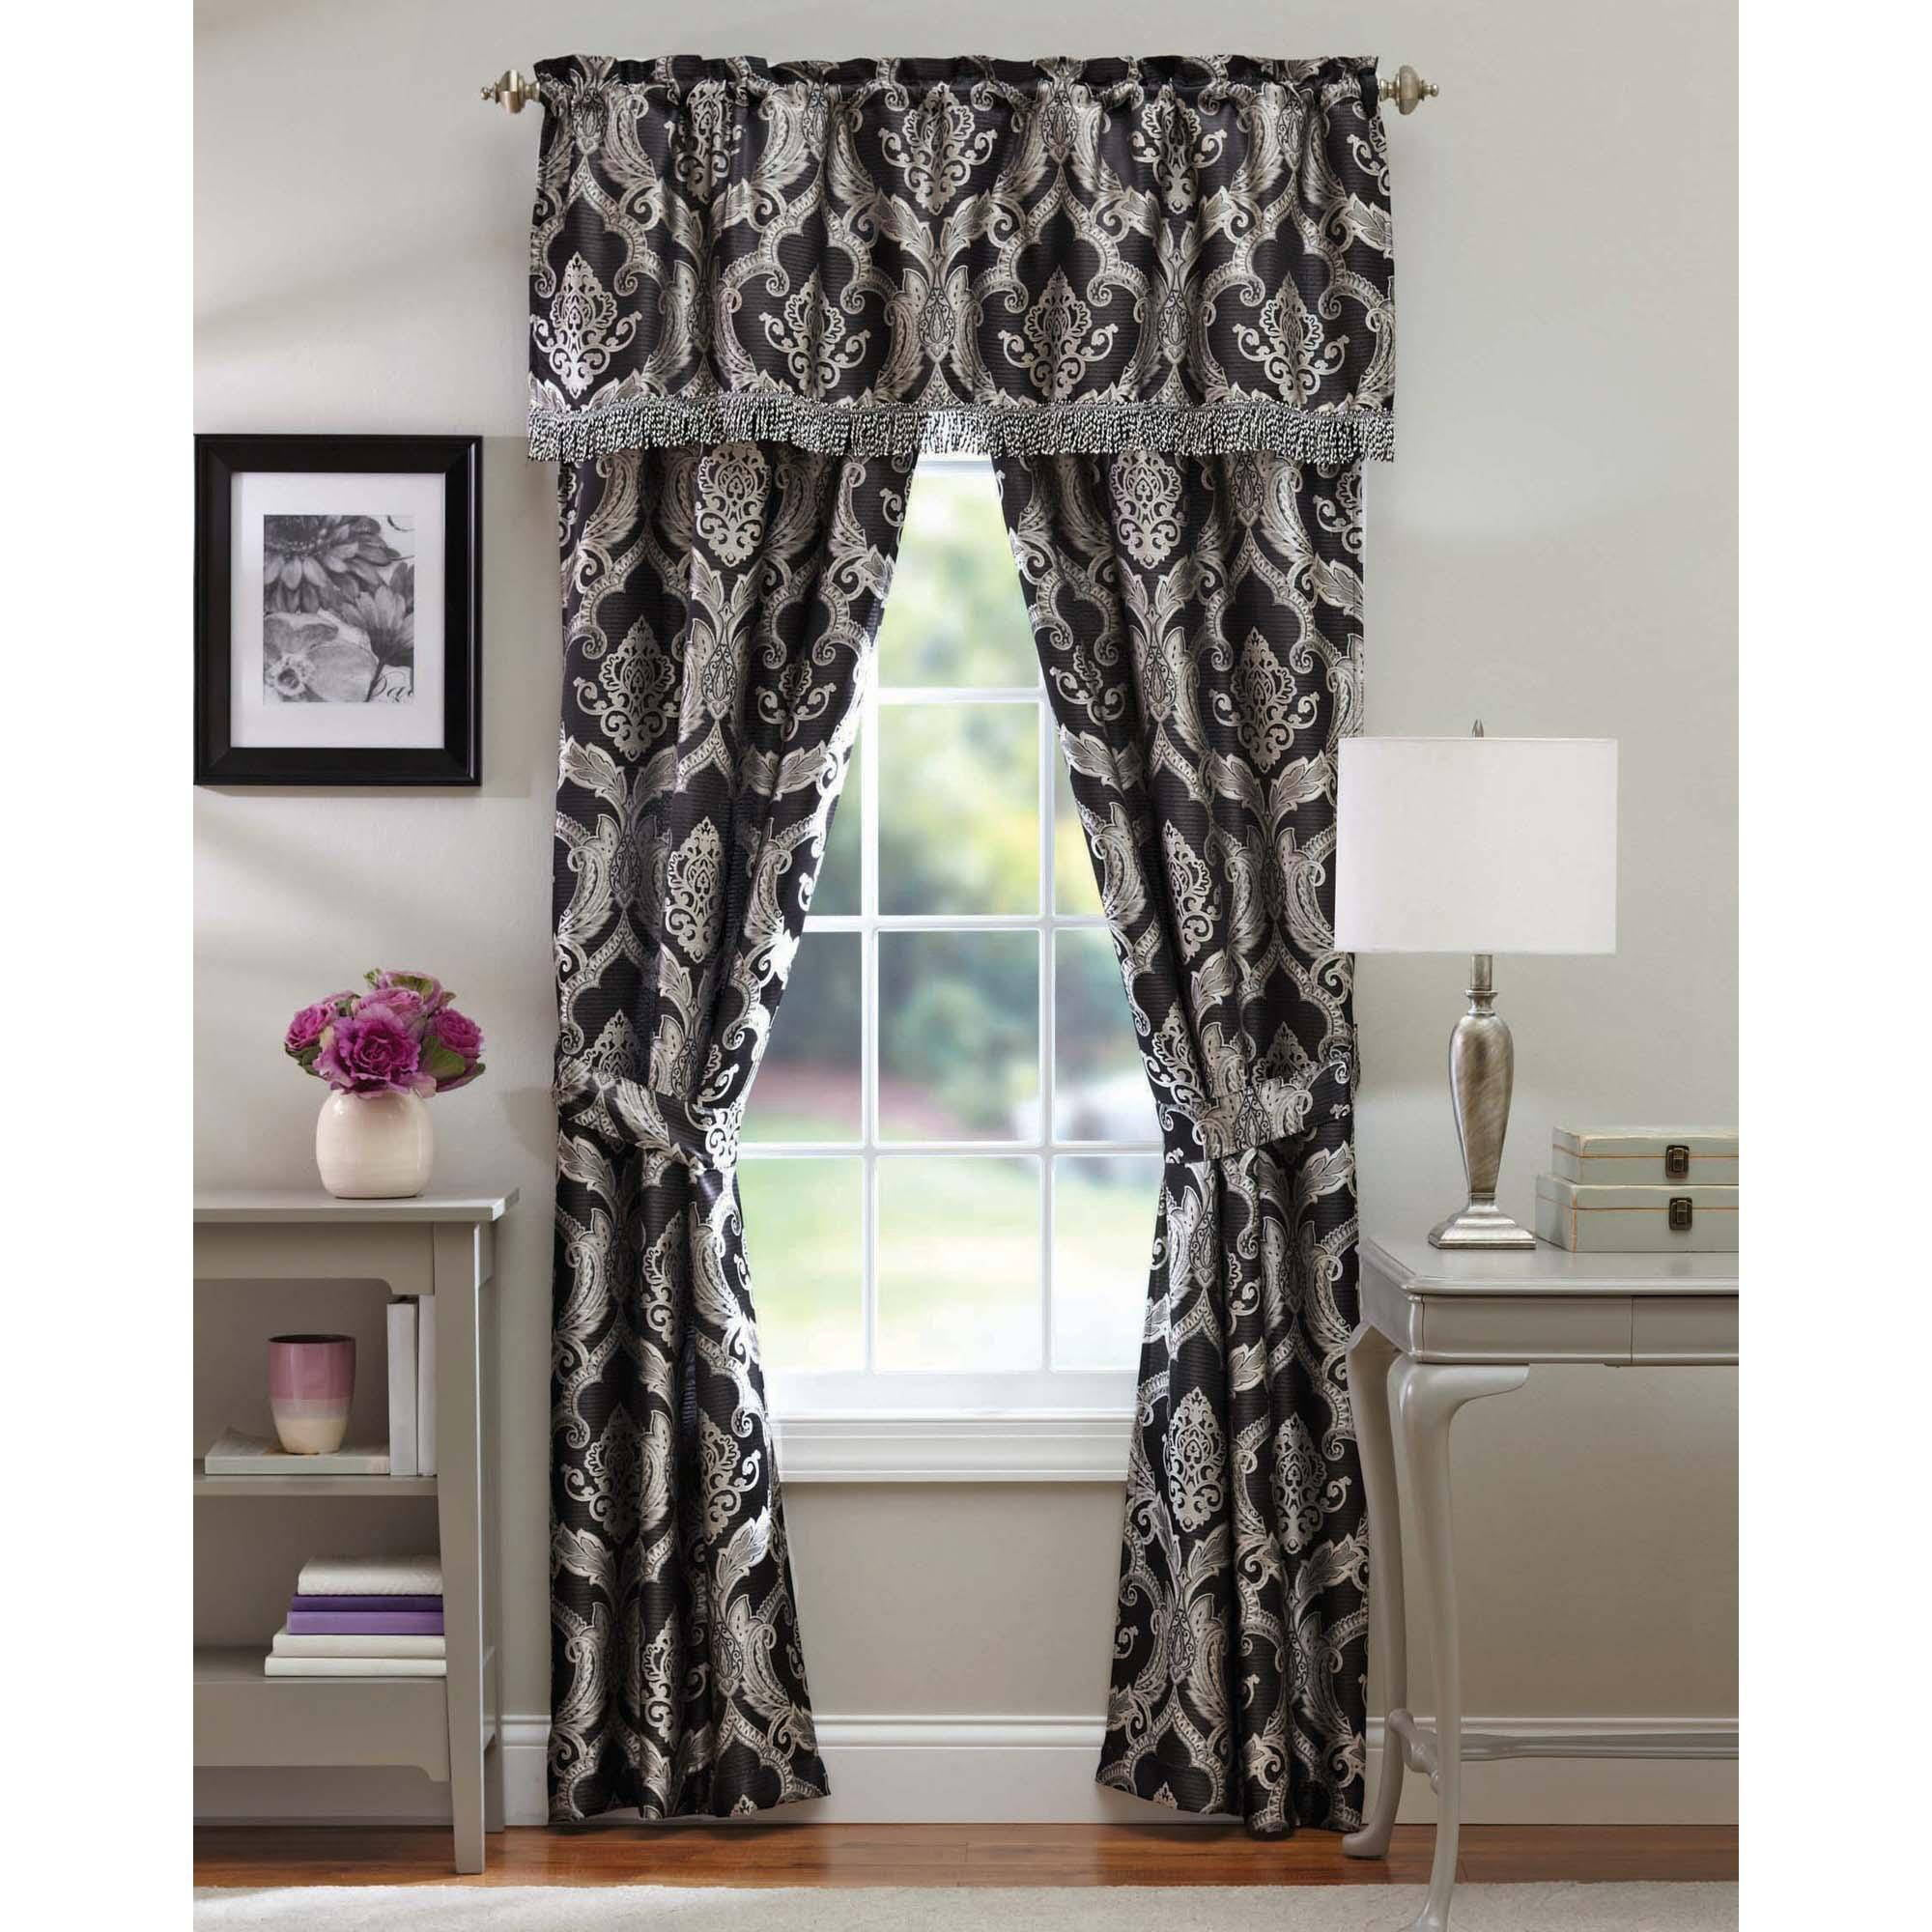 Black And White Color Block Curtains Damask Bedroom Curta